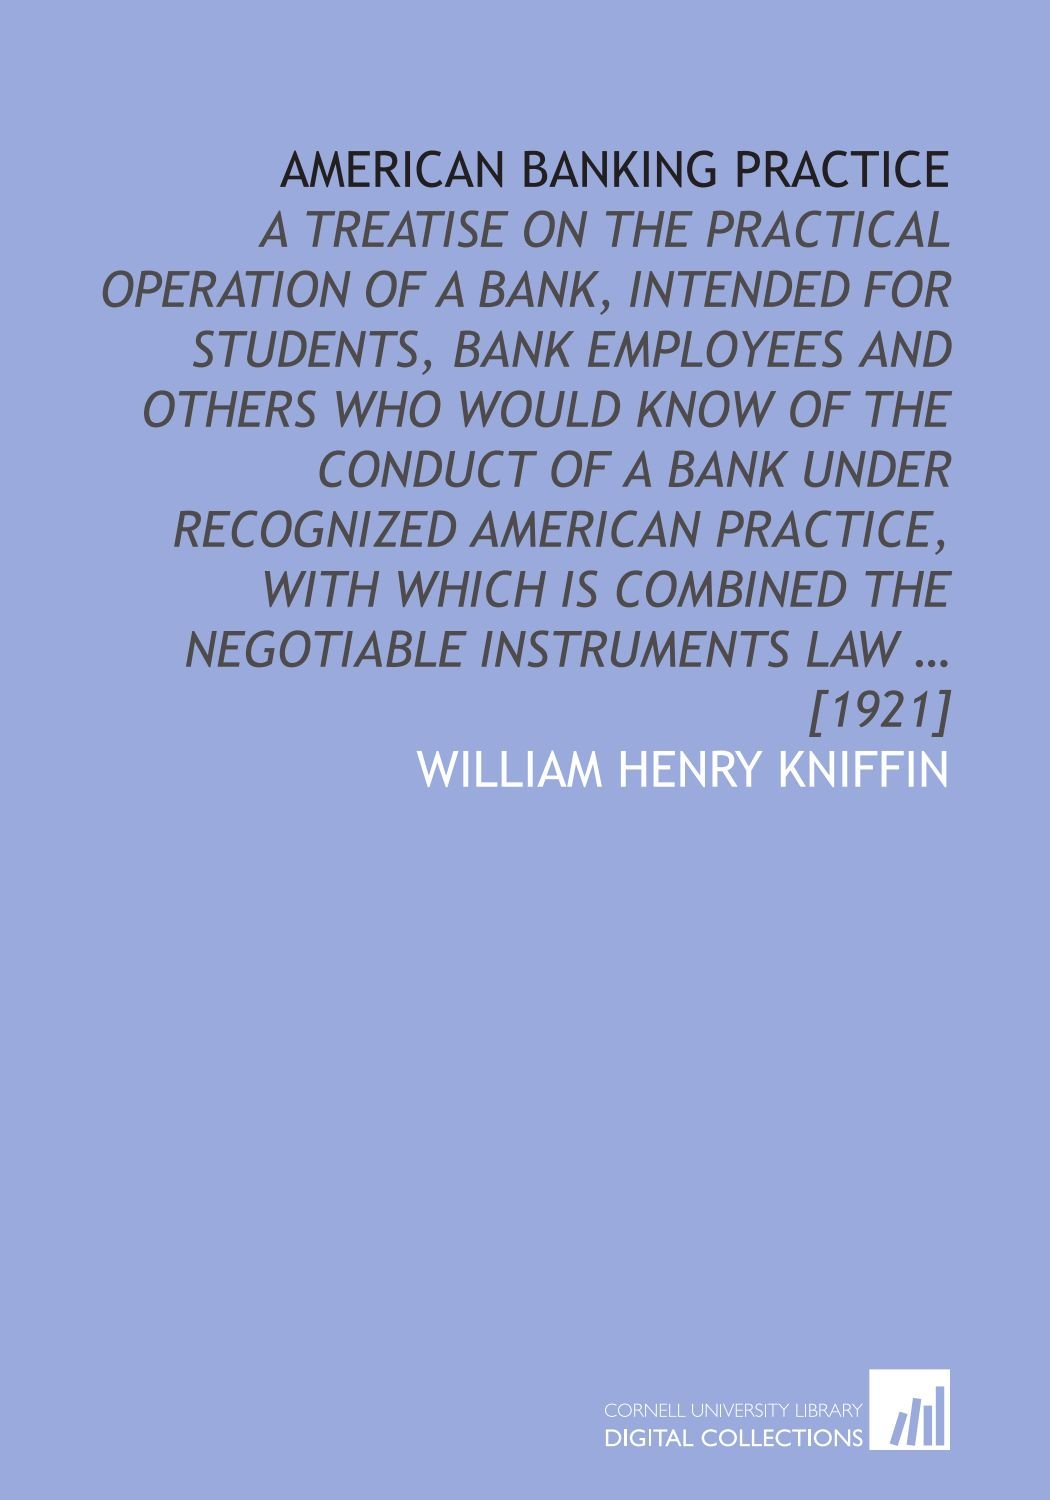 American banking practice: a treatise on the practical operation of a bank, intended for students, bank employees and others who would know of the ... the negotiable instruments law … [1921] ebook